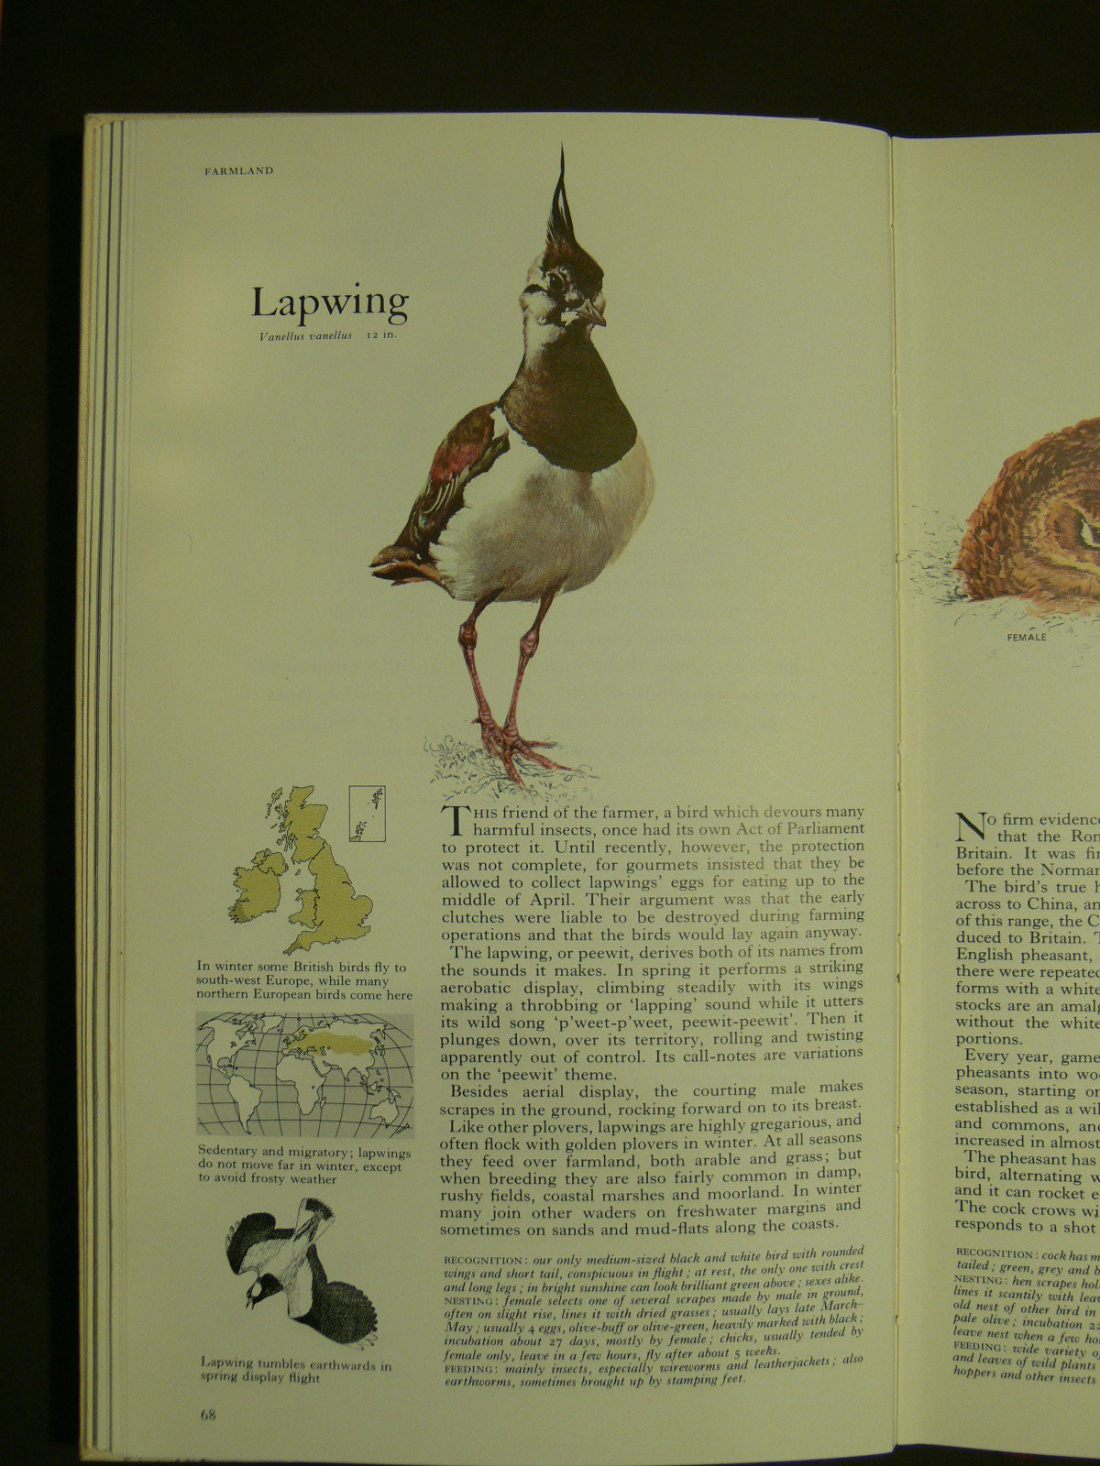 From the Readers Digest Book of Birds, a most valuable and informative book. It 'appeals' ... is a beautiful object, it draws you in like no website ever could.